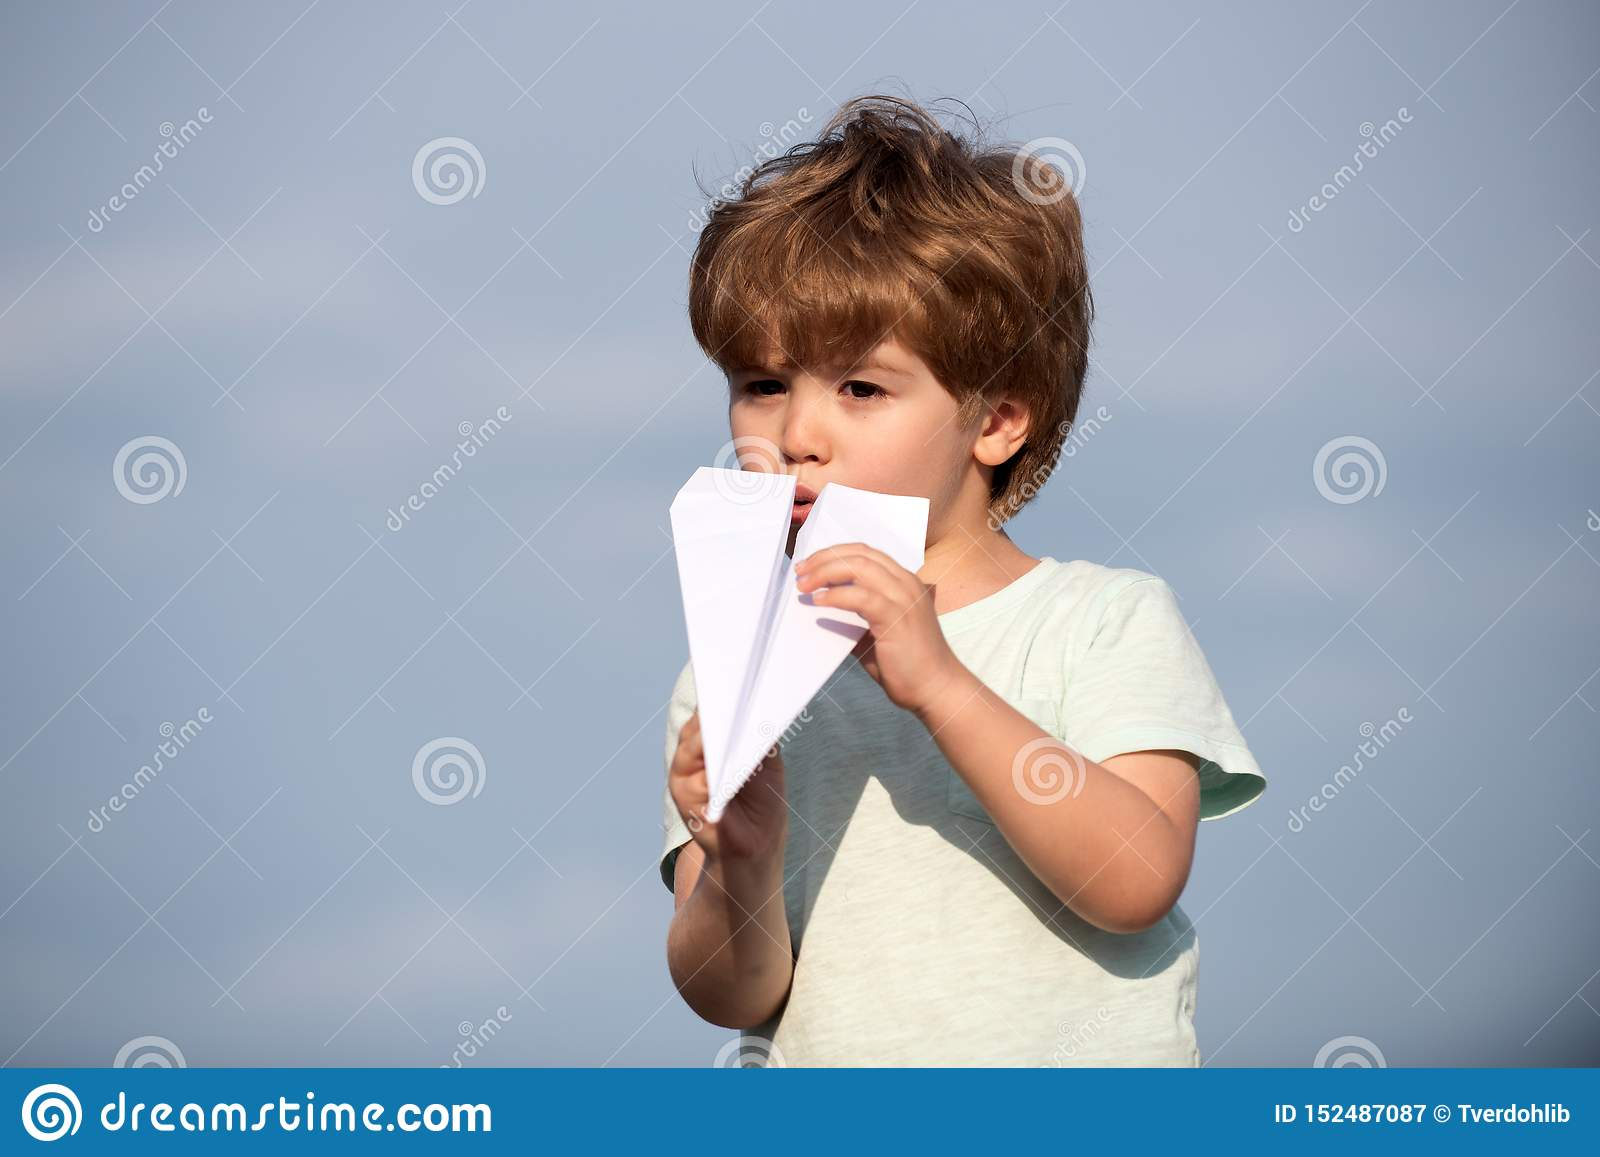 Happy child. Cute boy with paper aipplene. Happy kid on summer sky - dream of flying concept. Family travel and vacation